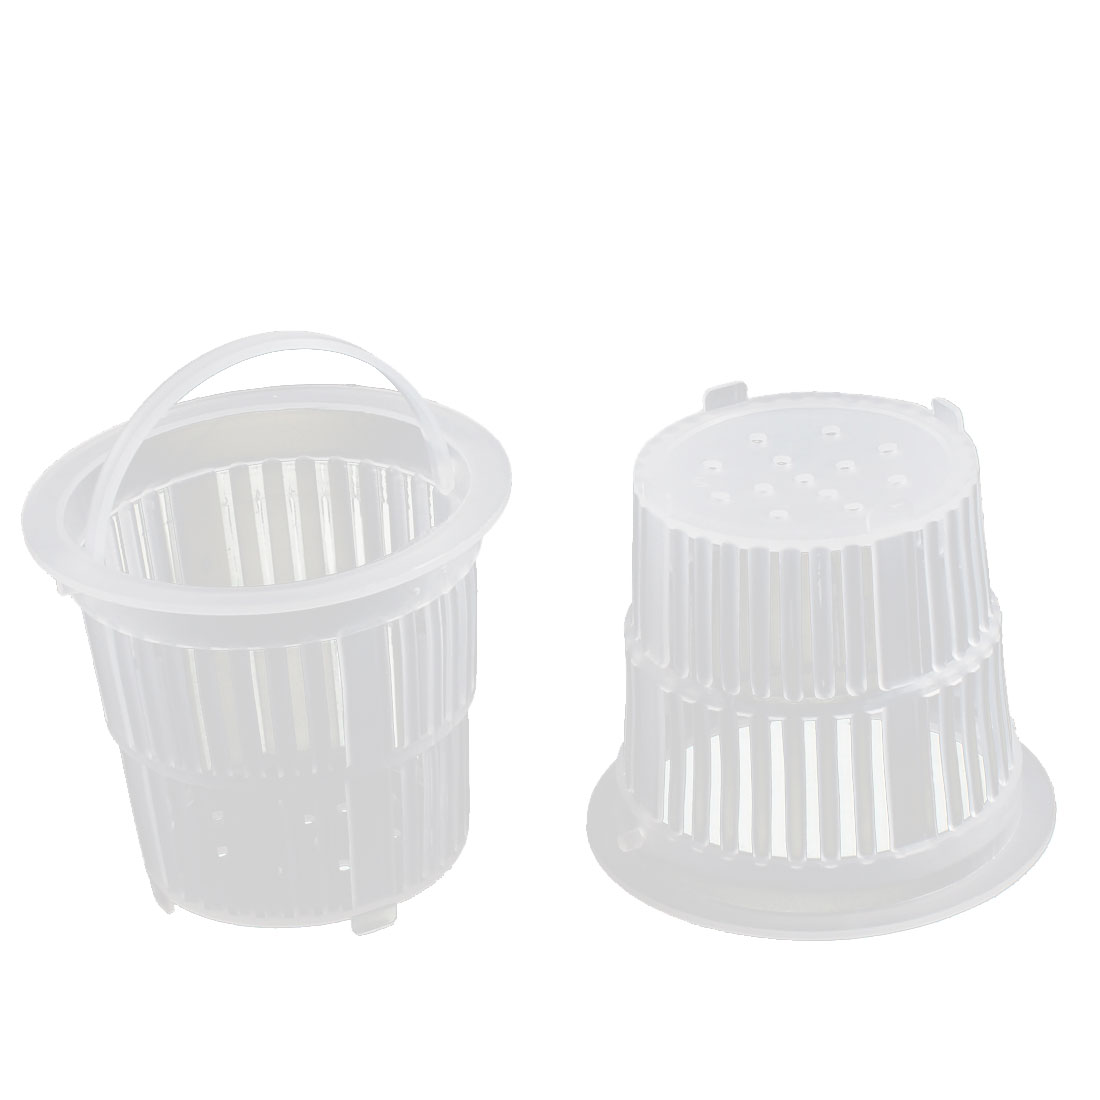 Sink Basin Plastic Drainer Strainer Food Residue Waste Stopper Filter Basket 2pcs